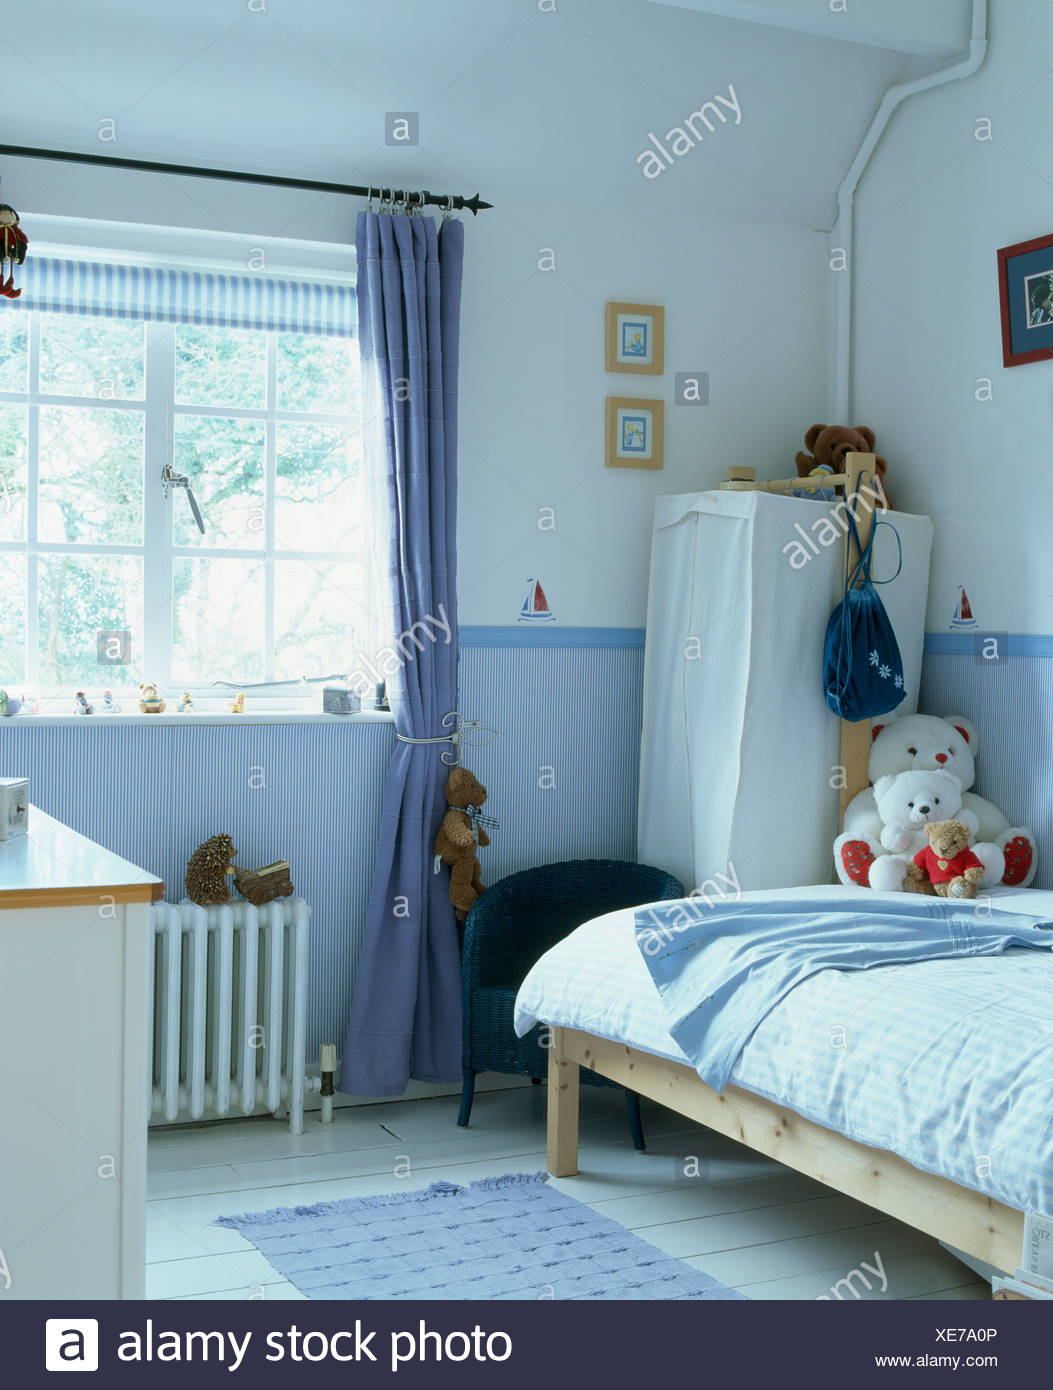 Blue curtain at window in childs bedroom with blue wallpaper dado 1053x1390